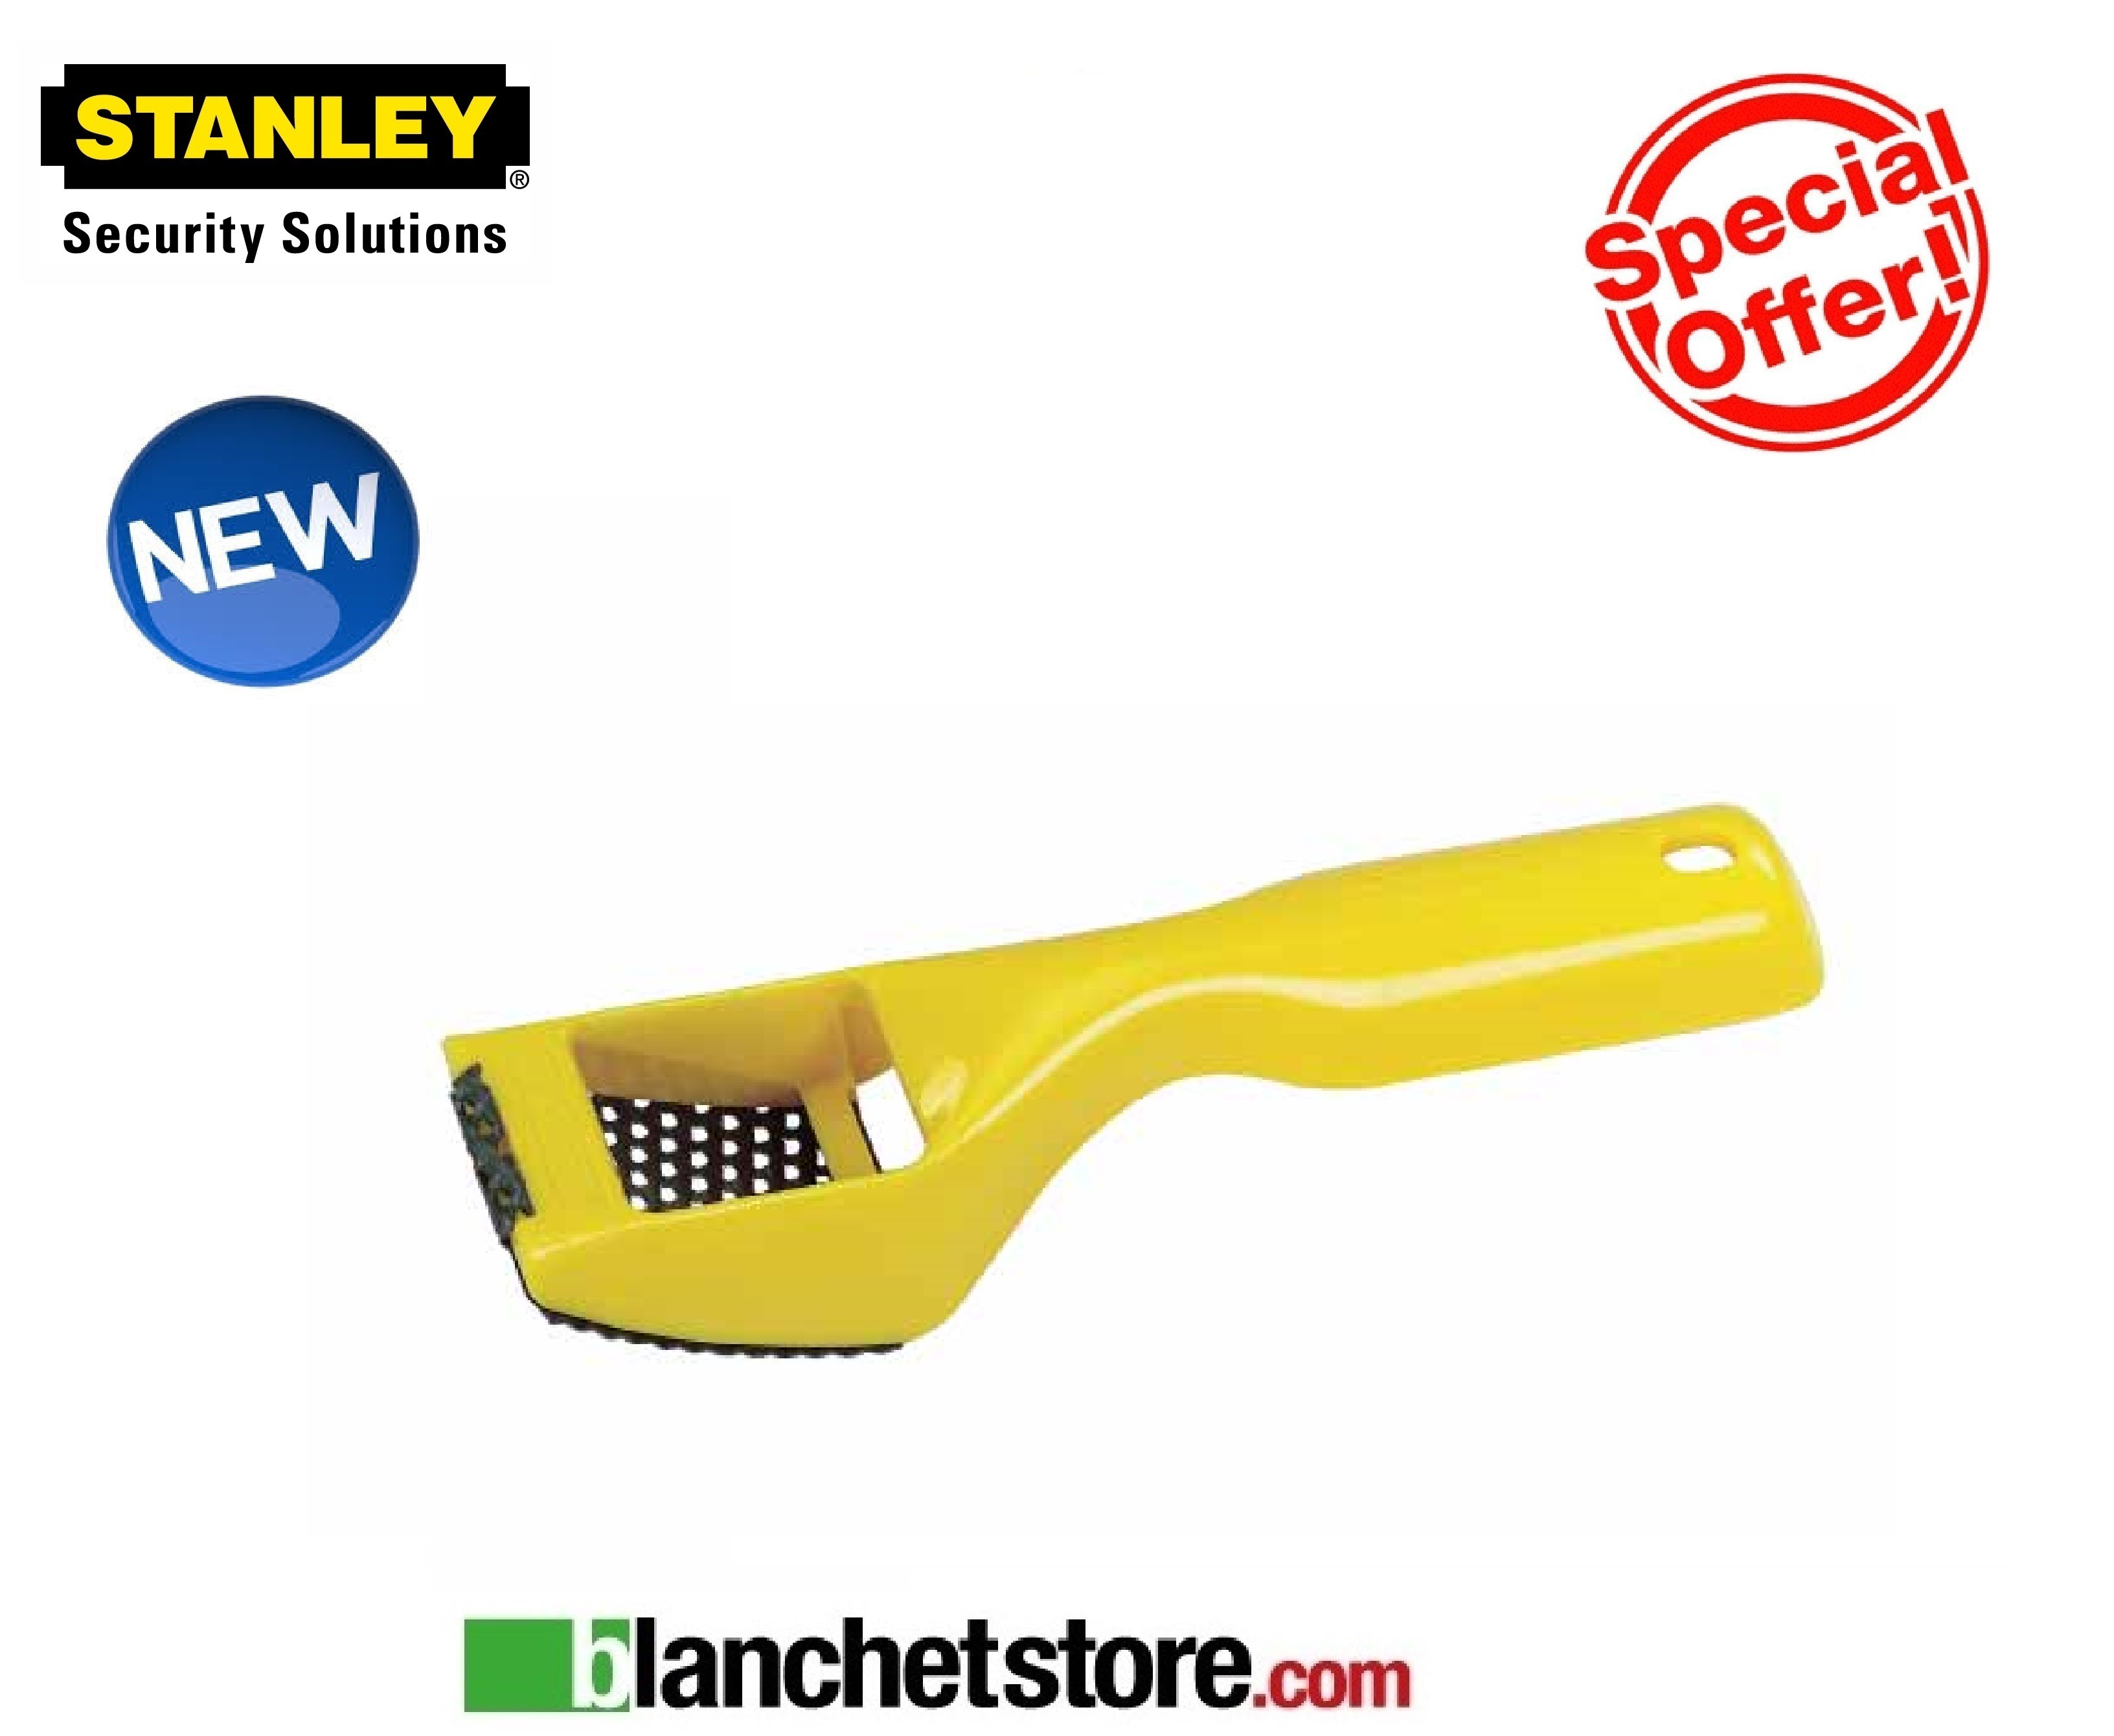 Pialla Stanley Surform raschietto Lunghezza totale 185 mm